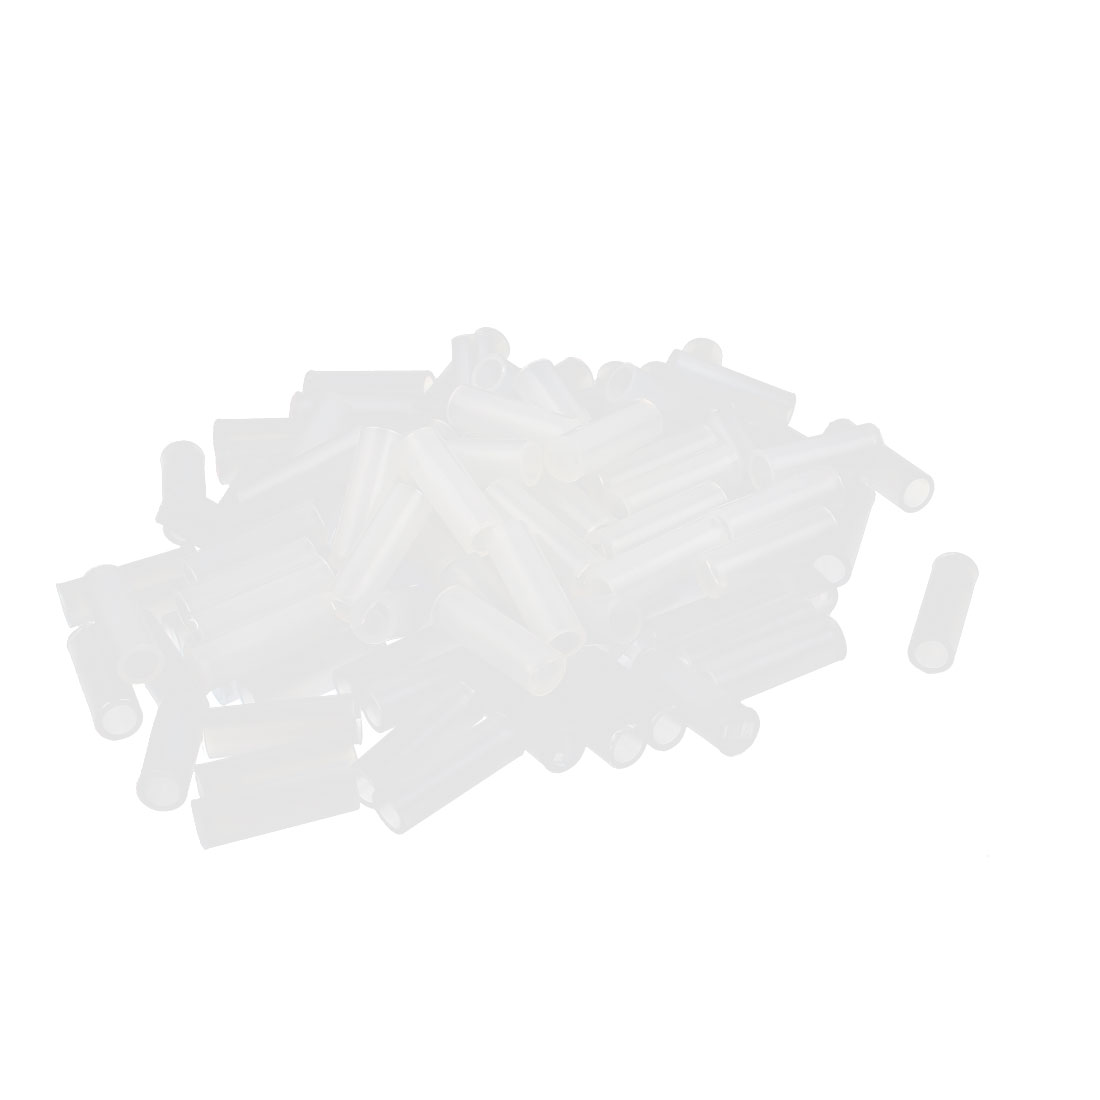 100 Pcs Nylon Cylinder LED Spacer Holder Support 3mm x 12mm Clear